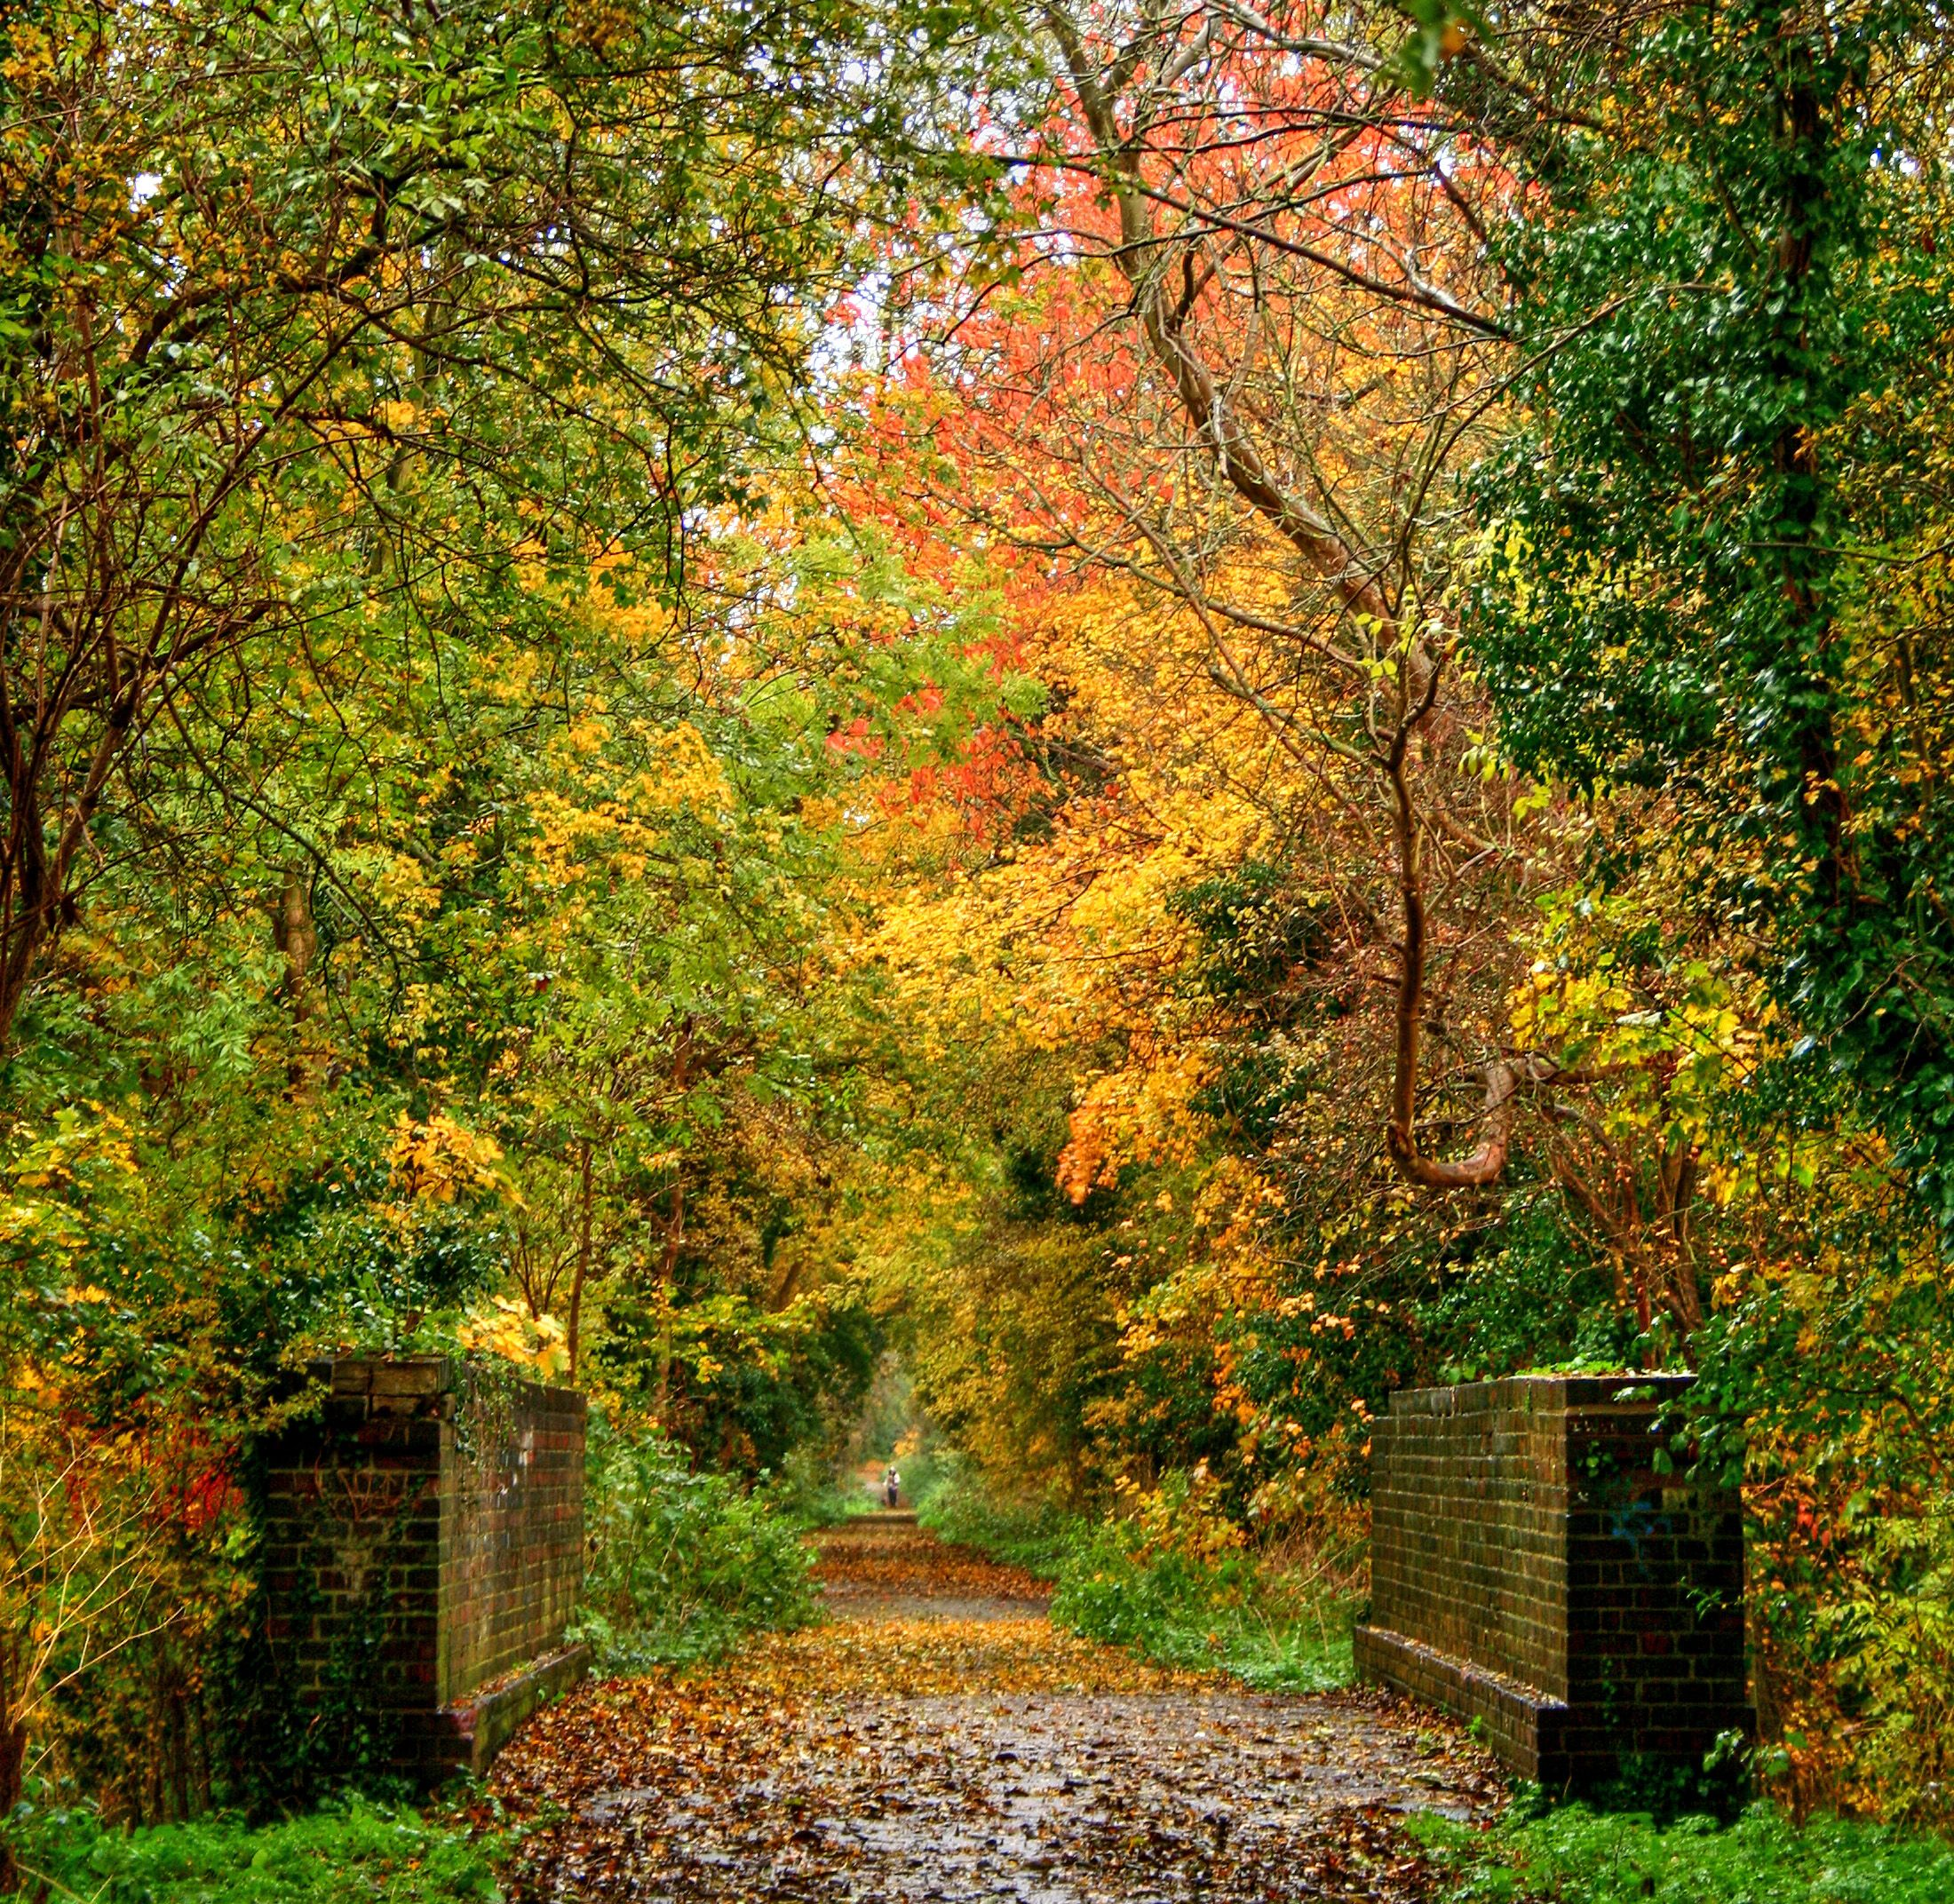 Located In The Capalbio Countryside Which Is In The: The Bridge Over Ox Lane....Rainy Morning